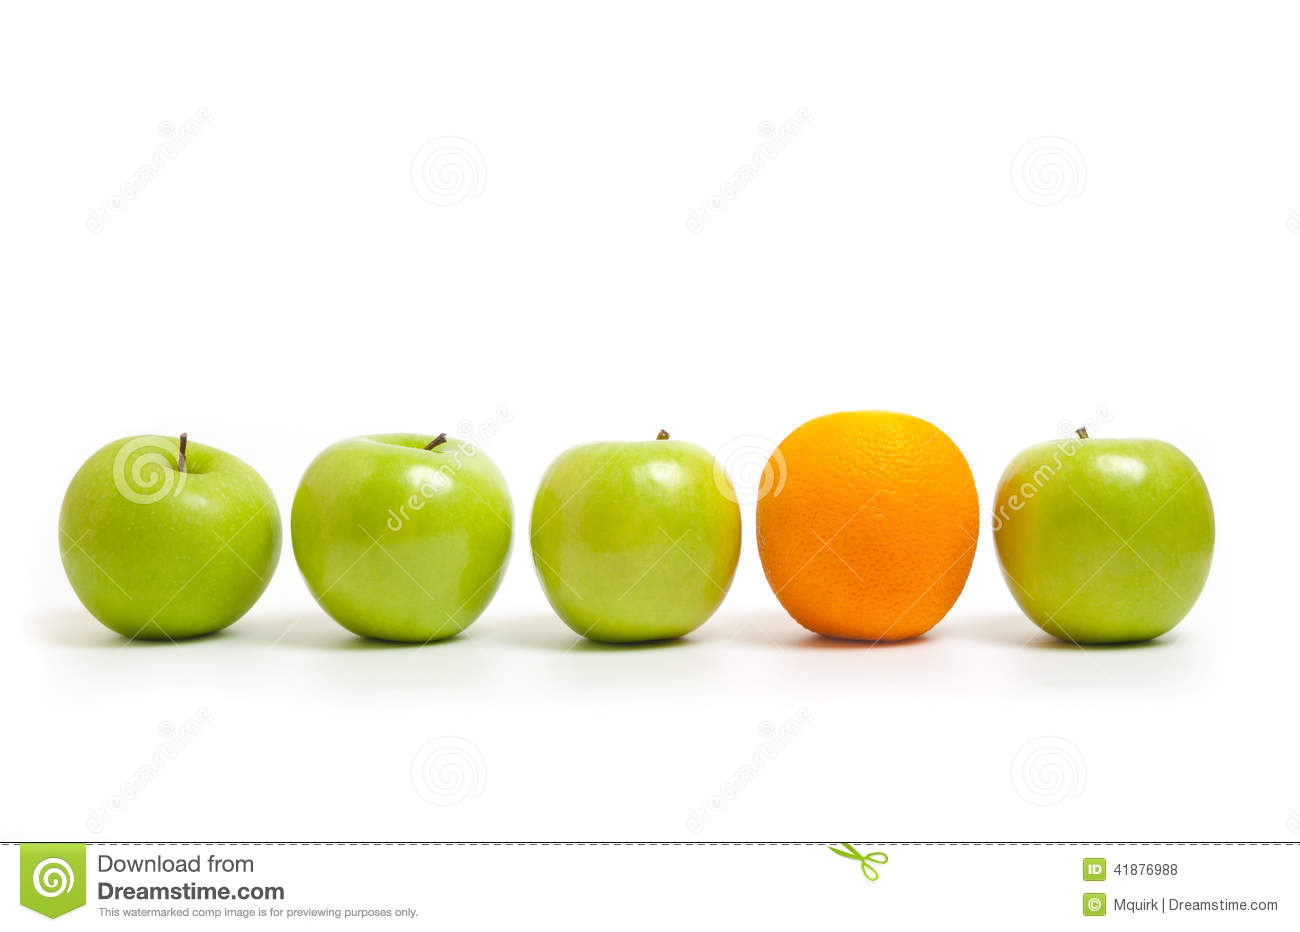 compare contrast apples and oranges Find idiom comparing apples oranges refers differences stock images in hd  and millions of other royalty-free stock photos, illustrations, and vectors in the.